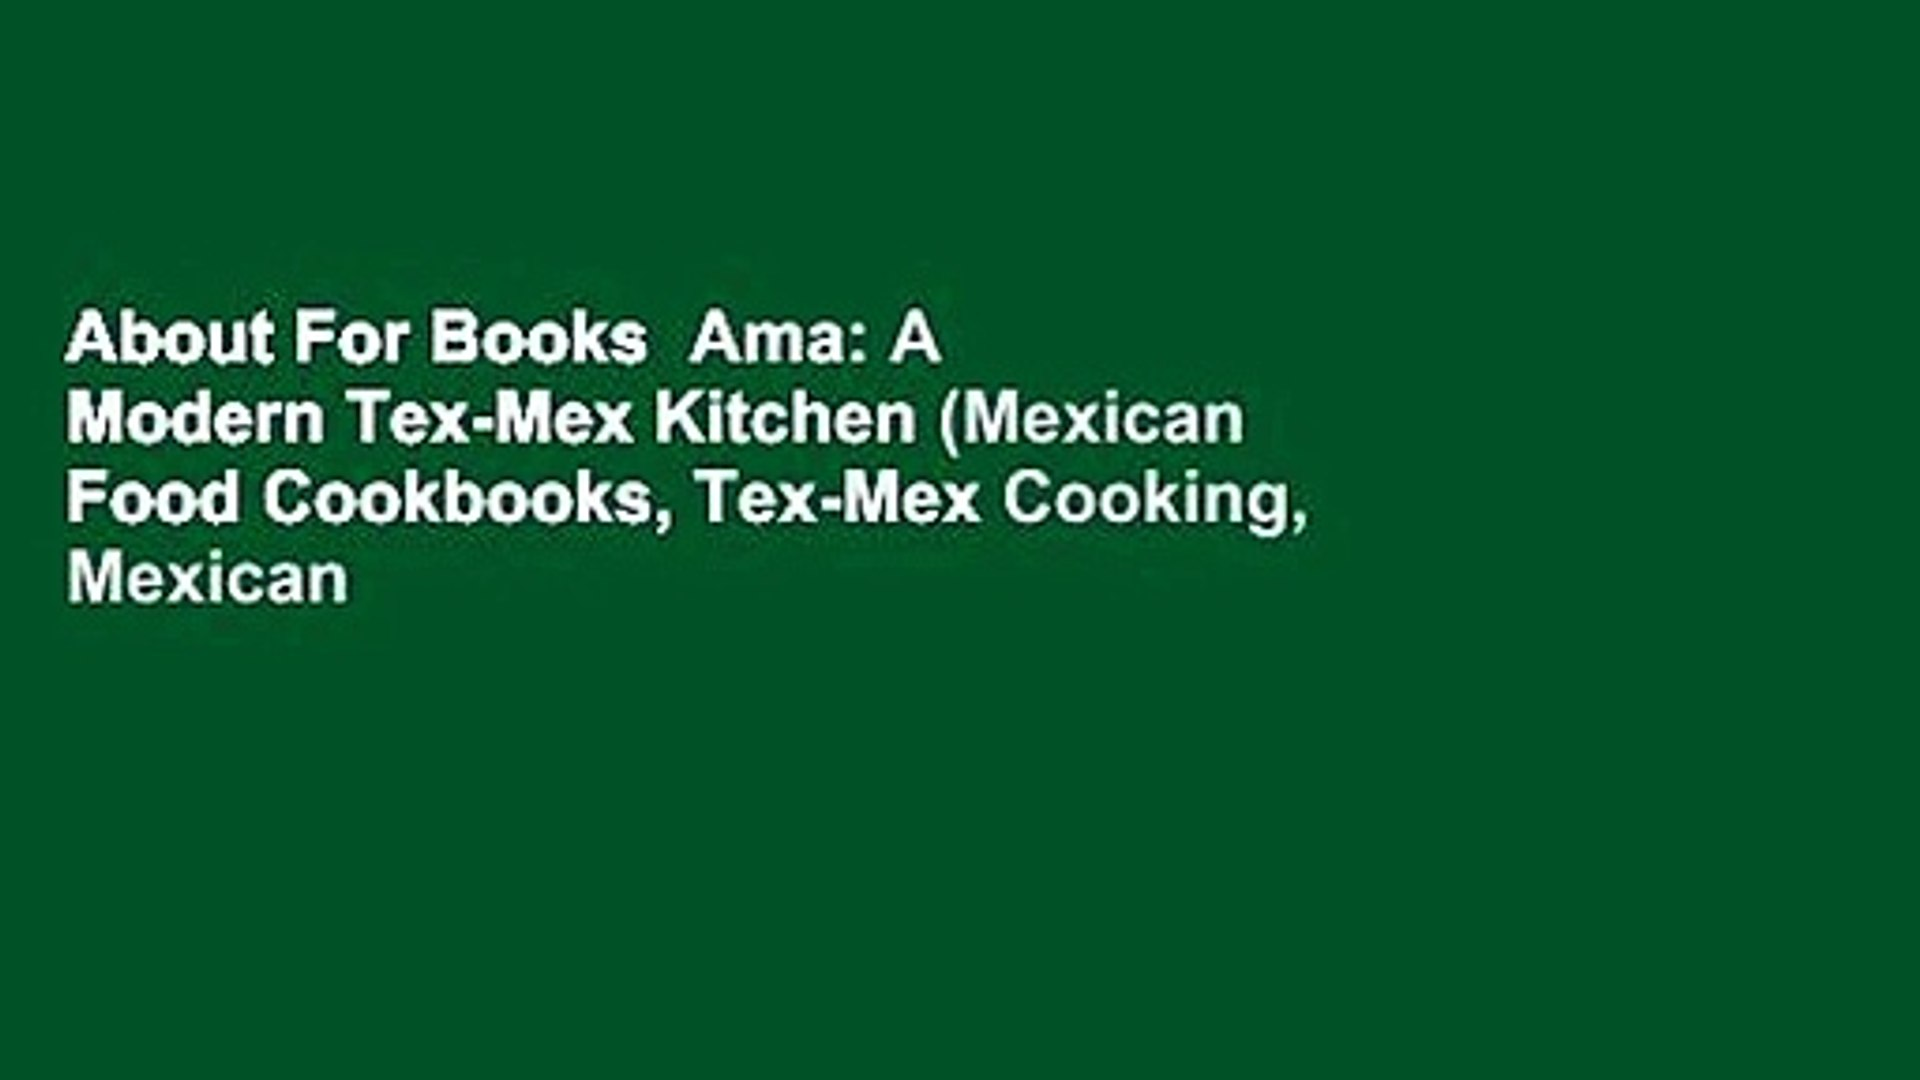 About For Books Ama A Modern Tex Mex Kitchen Mexican Food Cookbooks Tex Mex Cooking Mexican Video Dailymotion